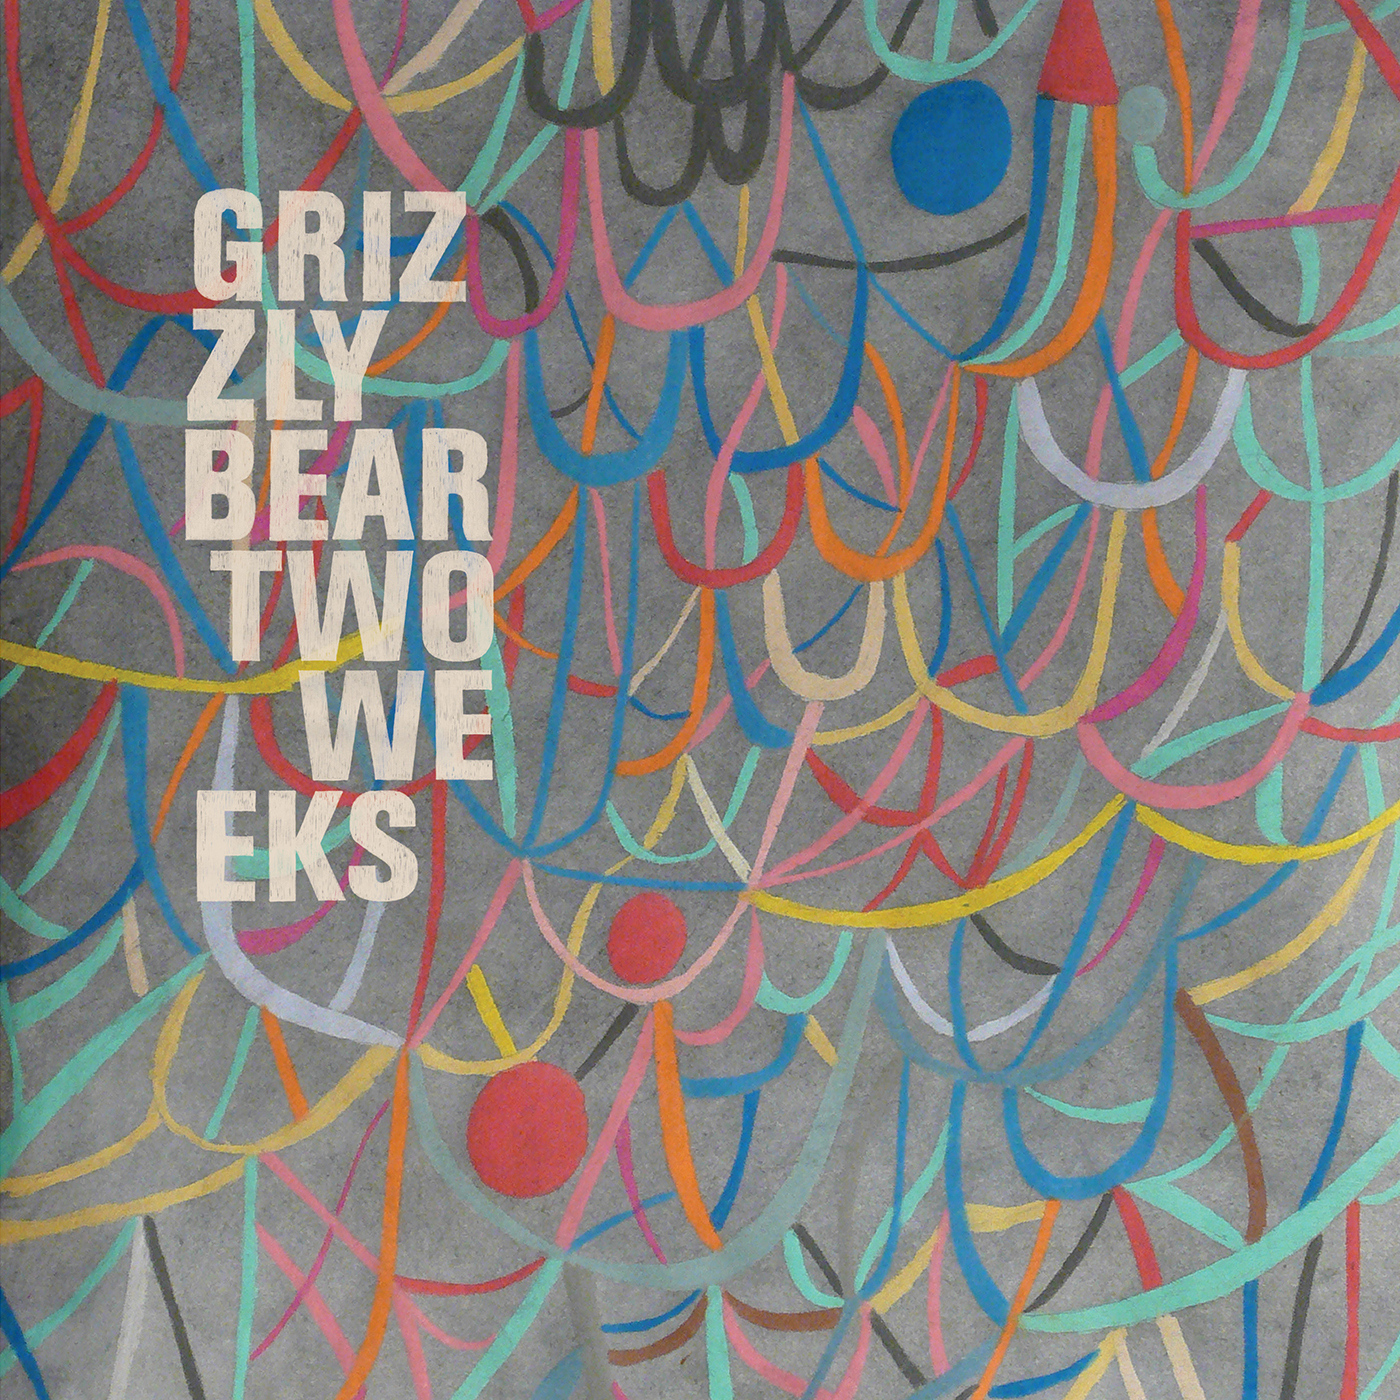 Listen Free to Grizzly Bear - Two Weeks (Fred Falke Radio Mix) Radio | iHeartRadio